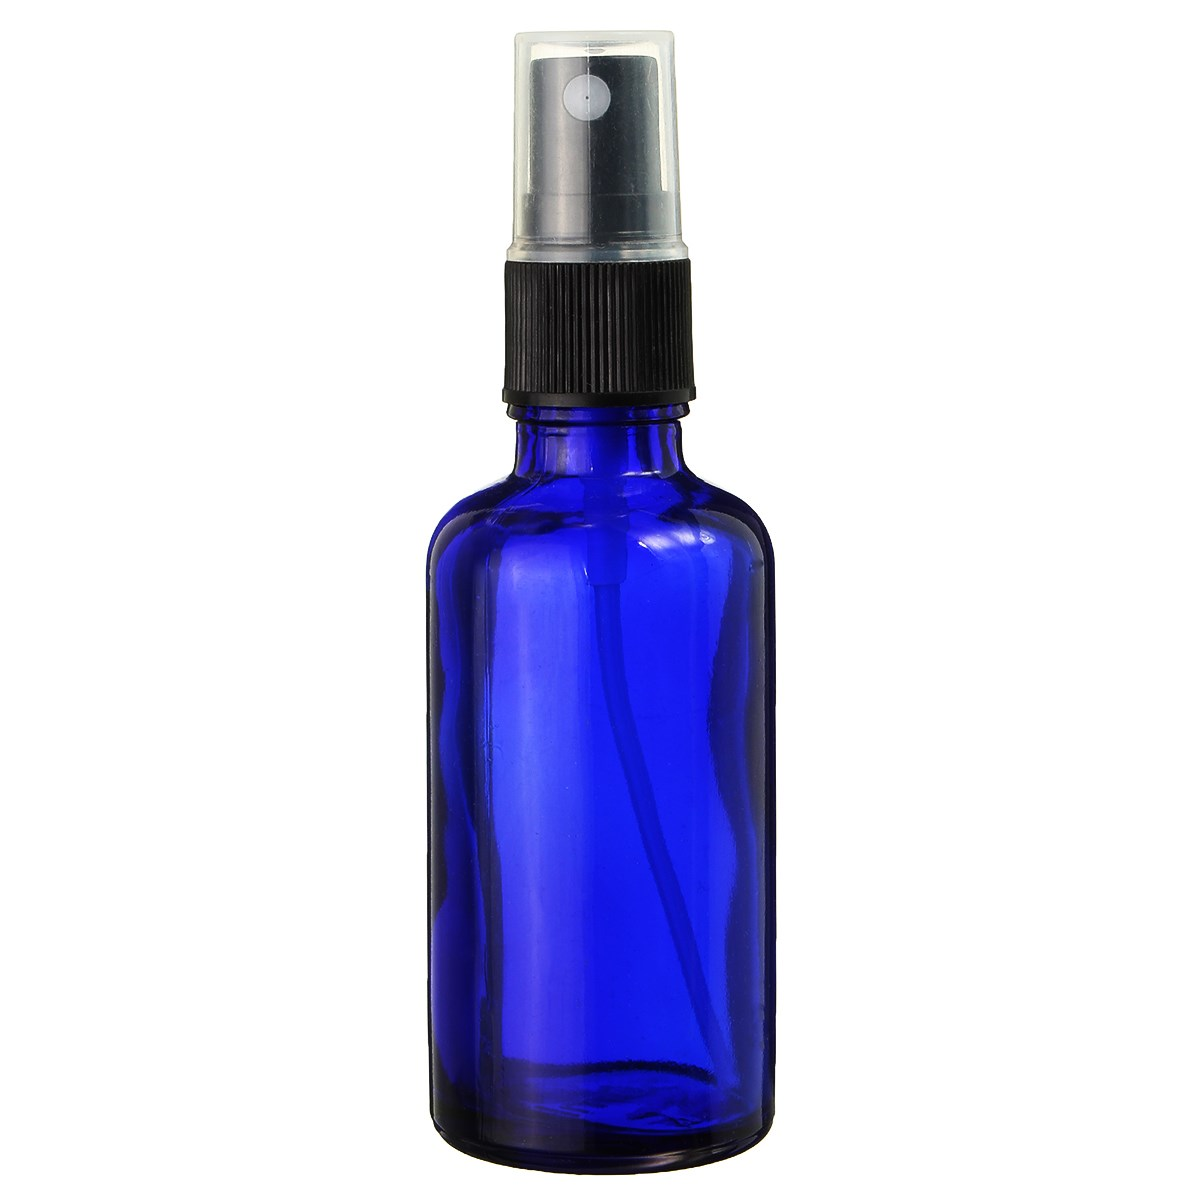 1pcs 50ml Blue Empty Glass Spray Bottle Glass Sprayer Bottles Perfume Container Refillable Cosmetic Atomizer For Tarvel Gift